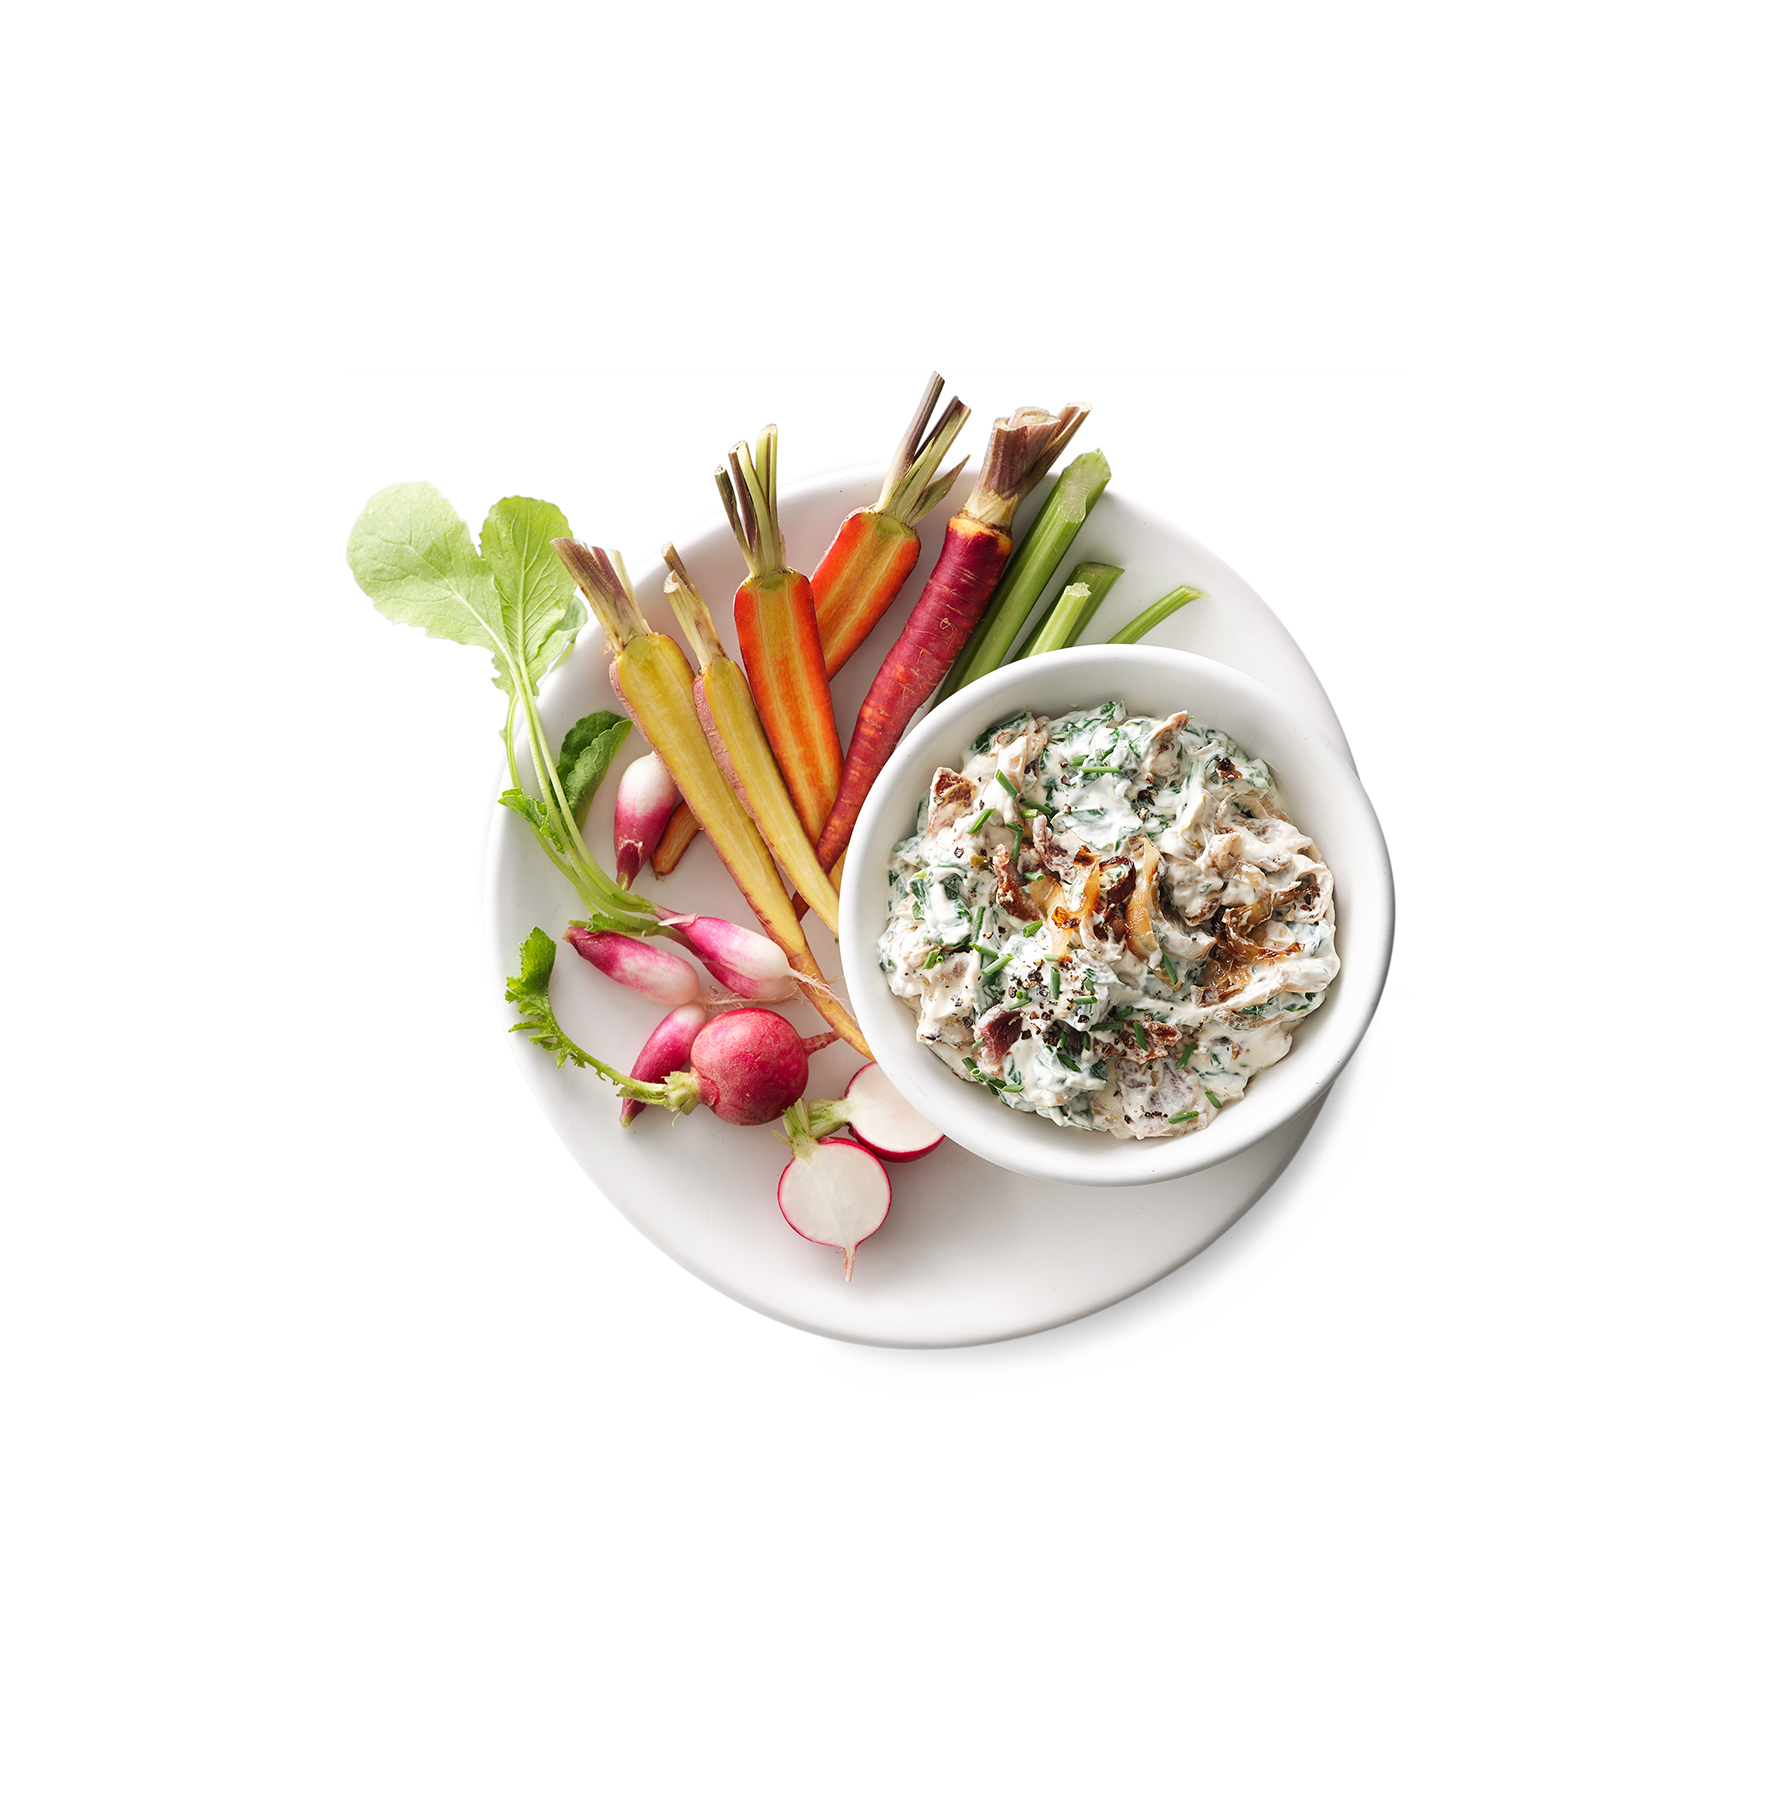 carmelized-endive-bacon-dip